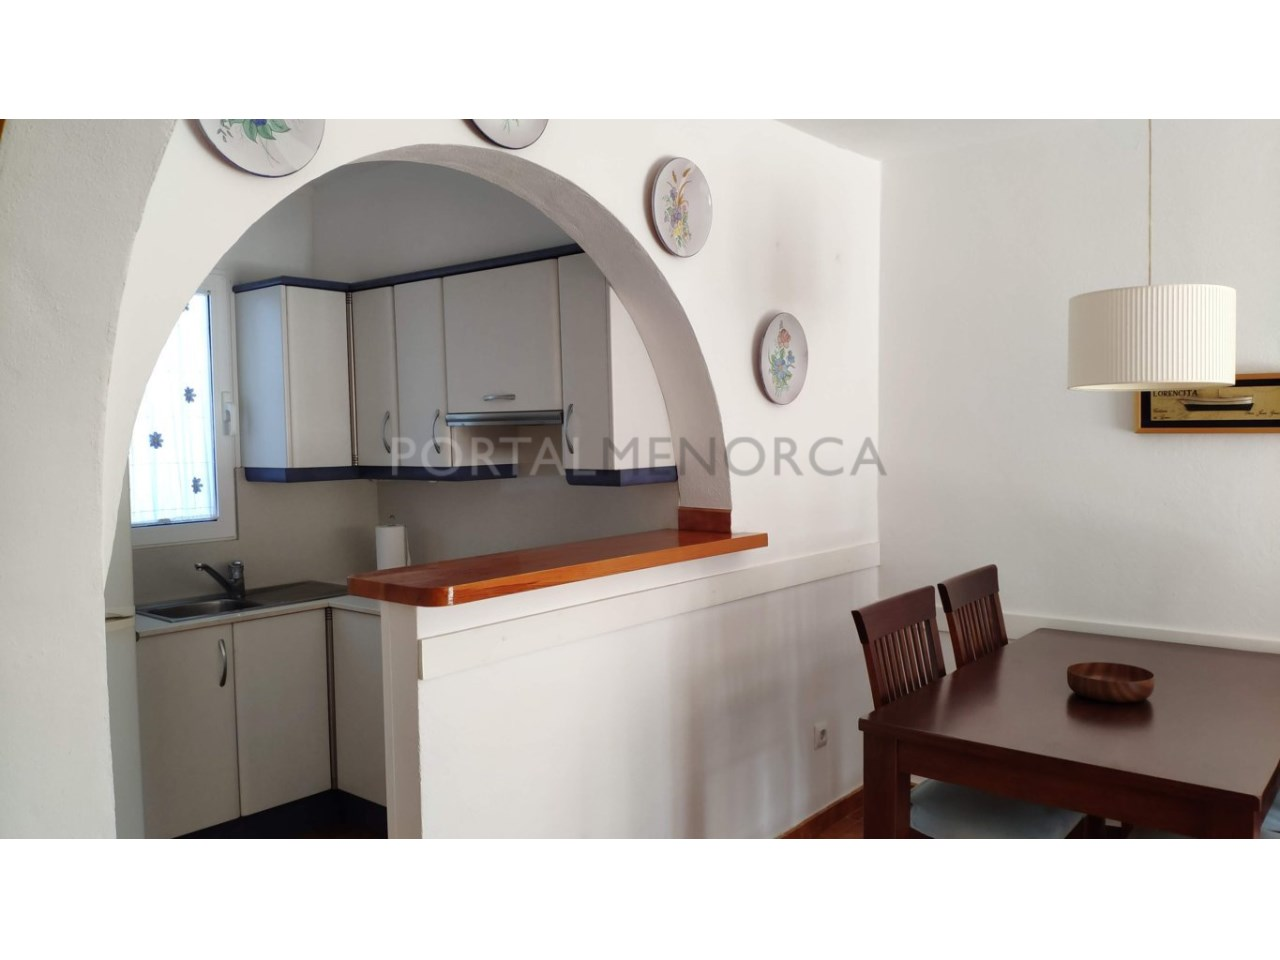 Townhouse for sale in Calan Blanes near the beach- Kitchen and dinning room